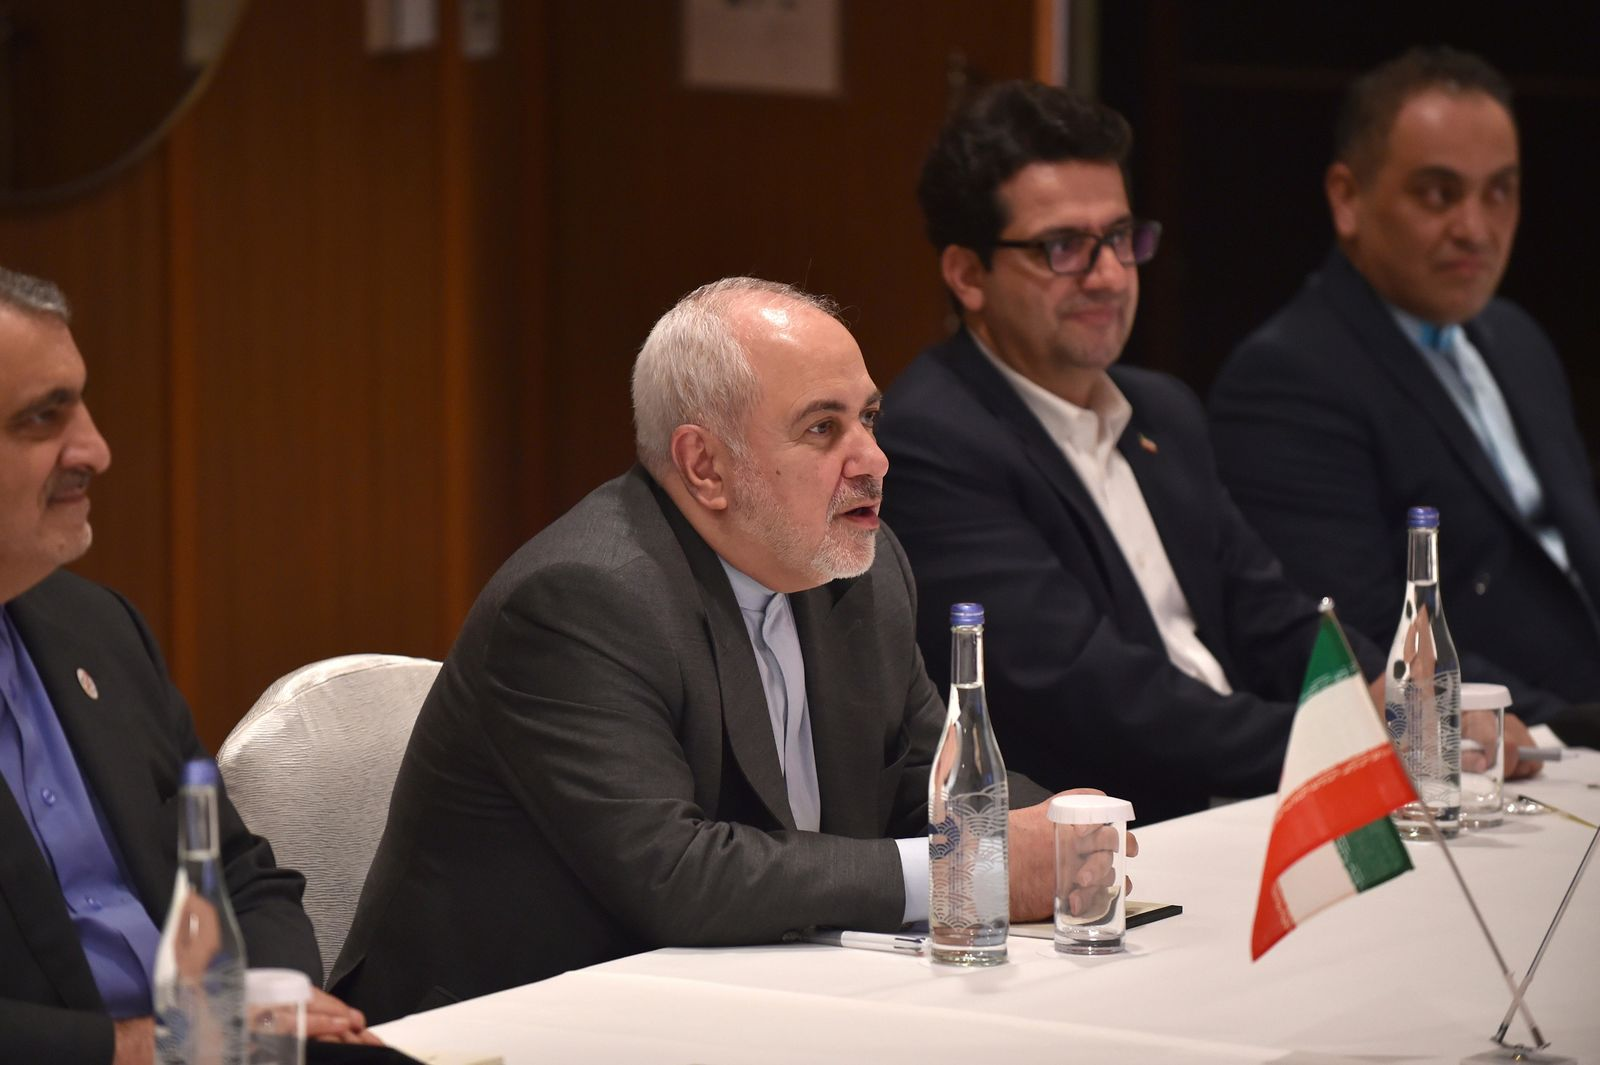 Iranian Foreign Minister Mohammad Javad Zarif, second left, speaks during a meeting with his Japanese counterpart Taro Kono at a hotel in Yokohama on August 27, 2019. (Kazuhiro Nogi/Pool Photo via AP)